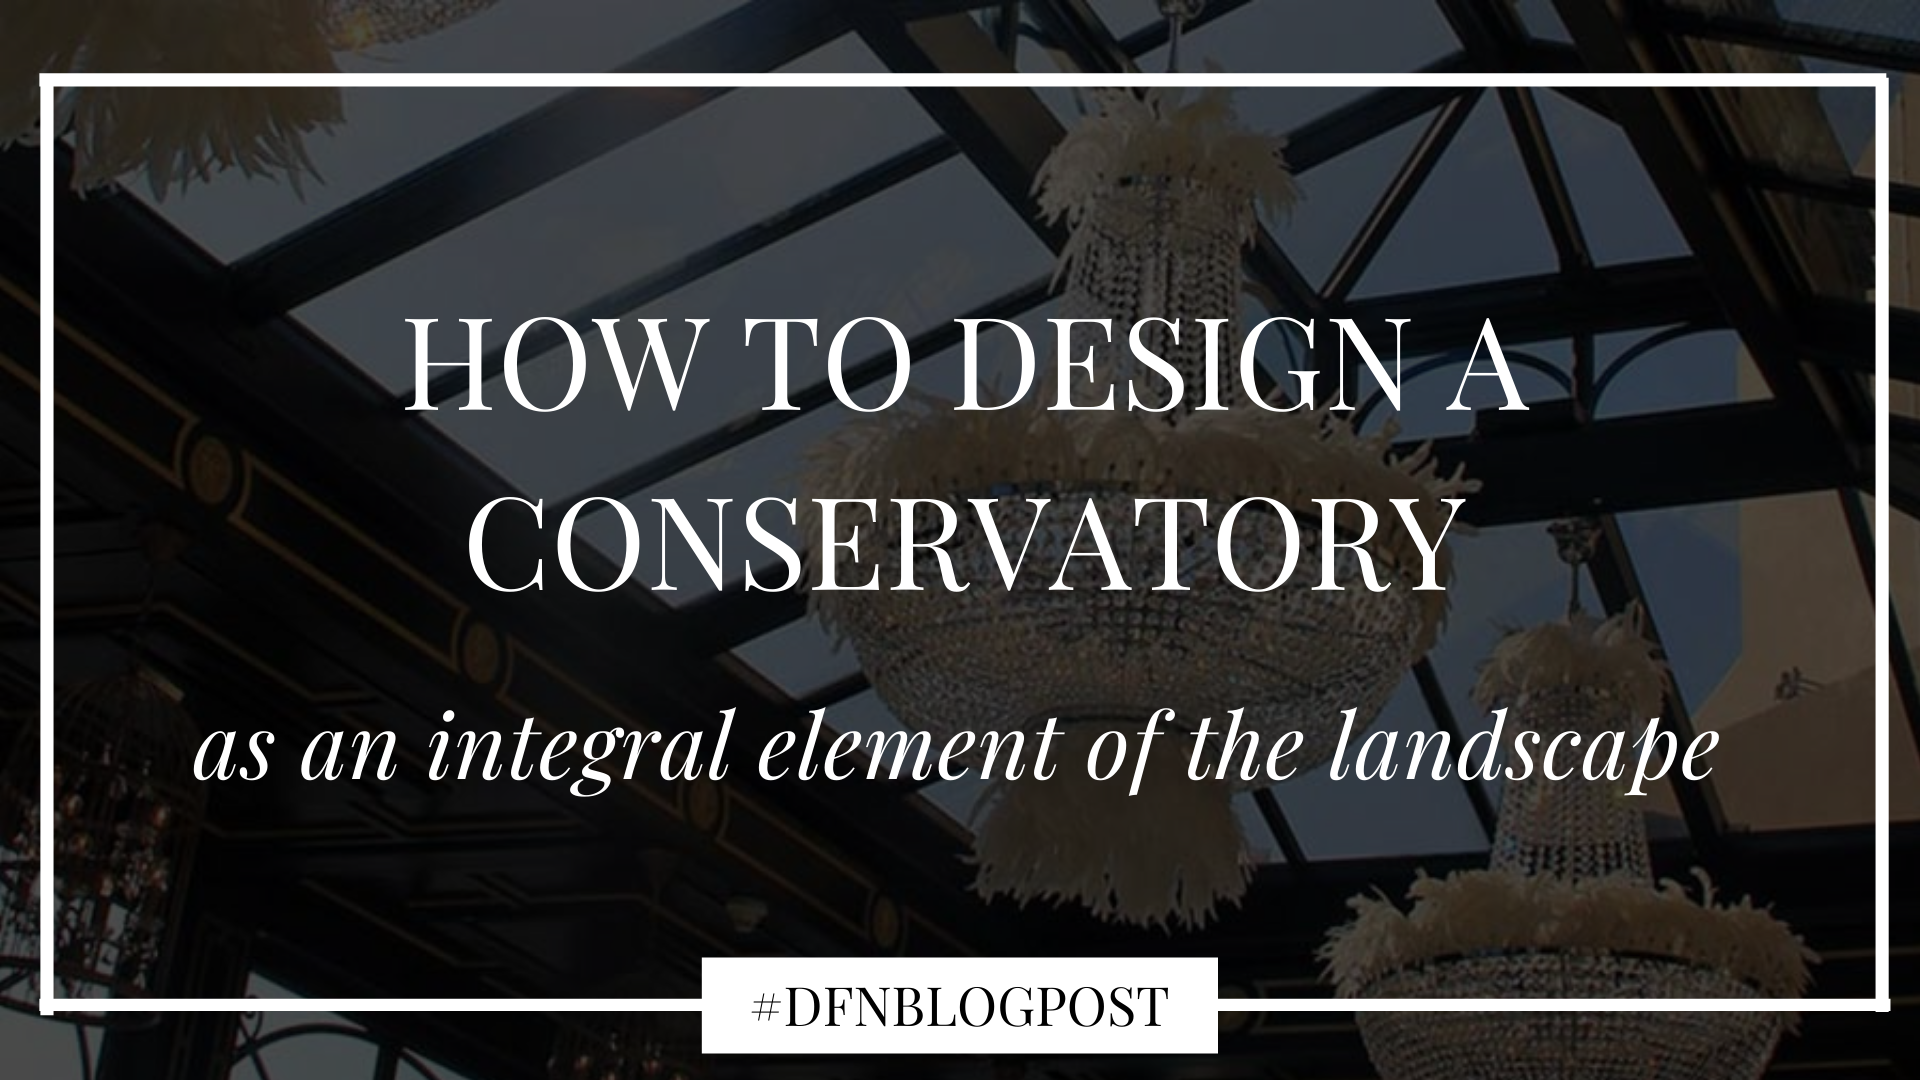 How to design a conservatory as an integral element of the landscape